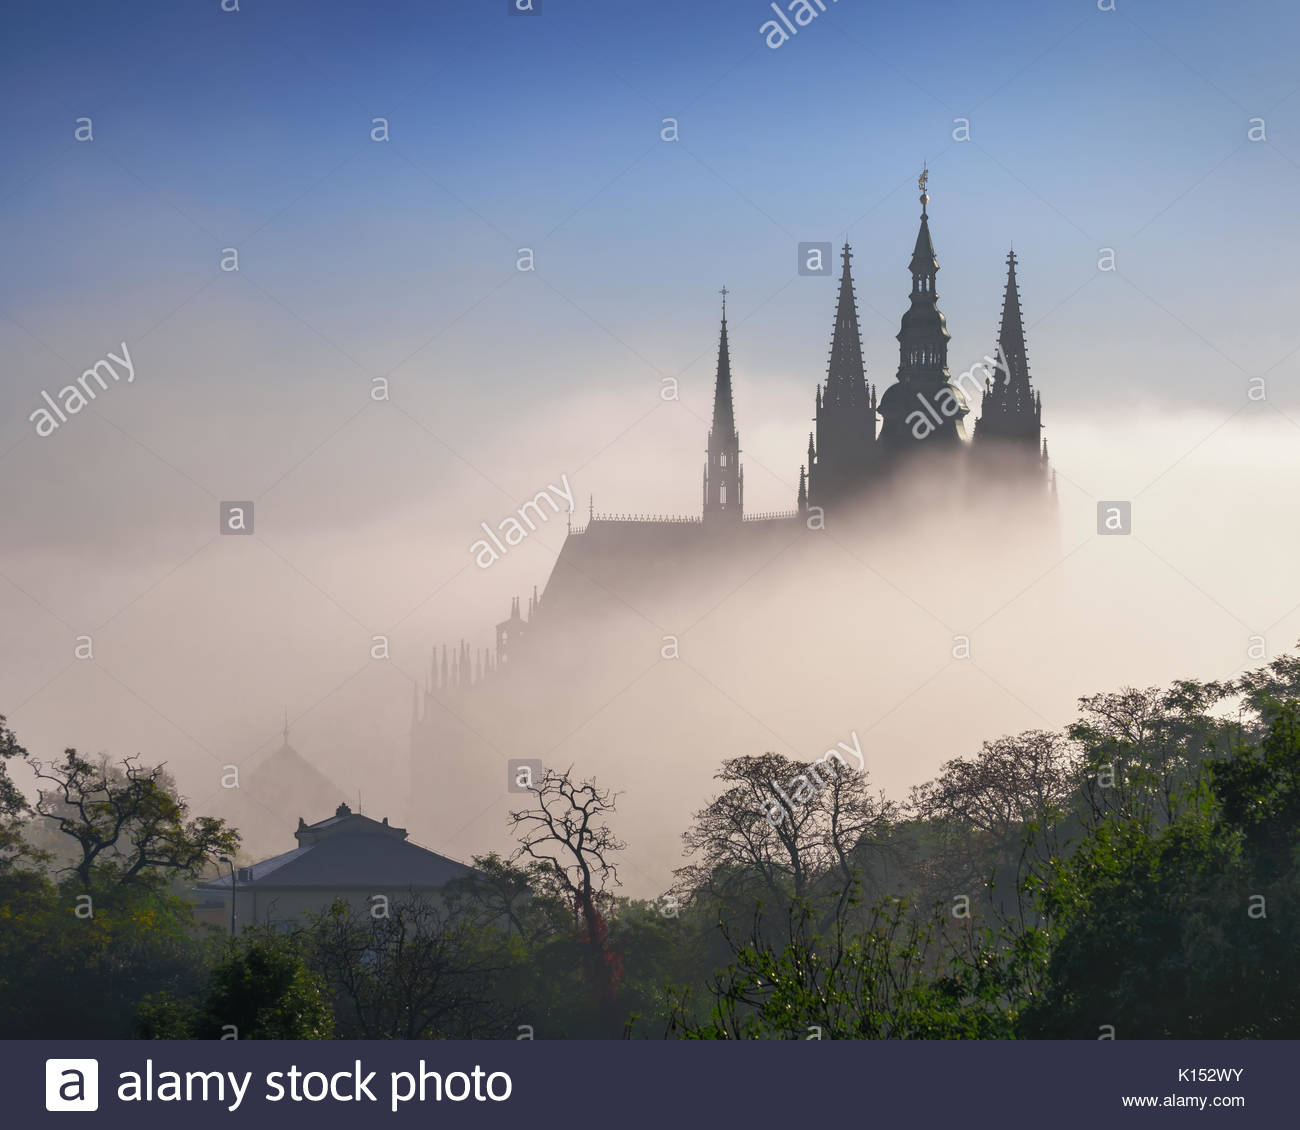 Fog waves over St. Vitus Cathedral during autumn, Czech republic. - Stock Image